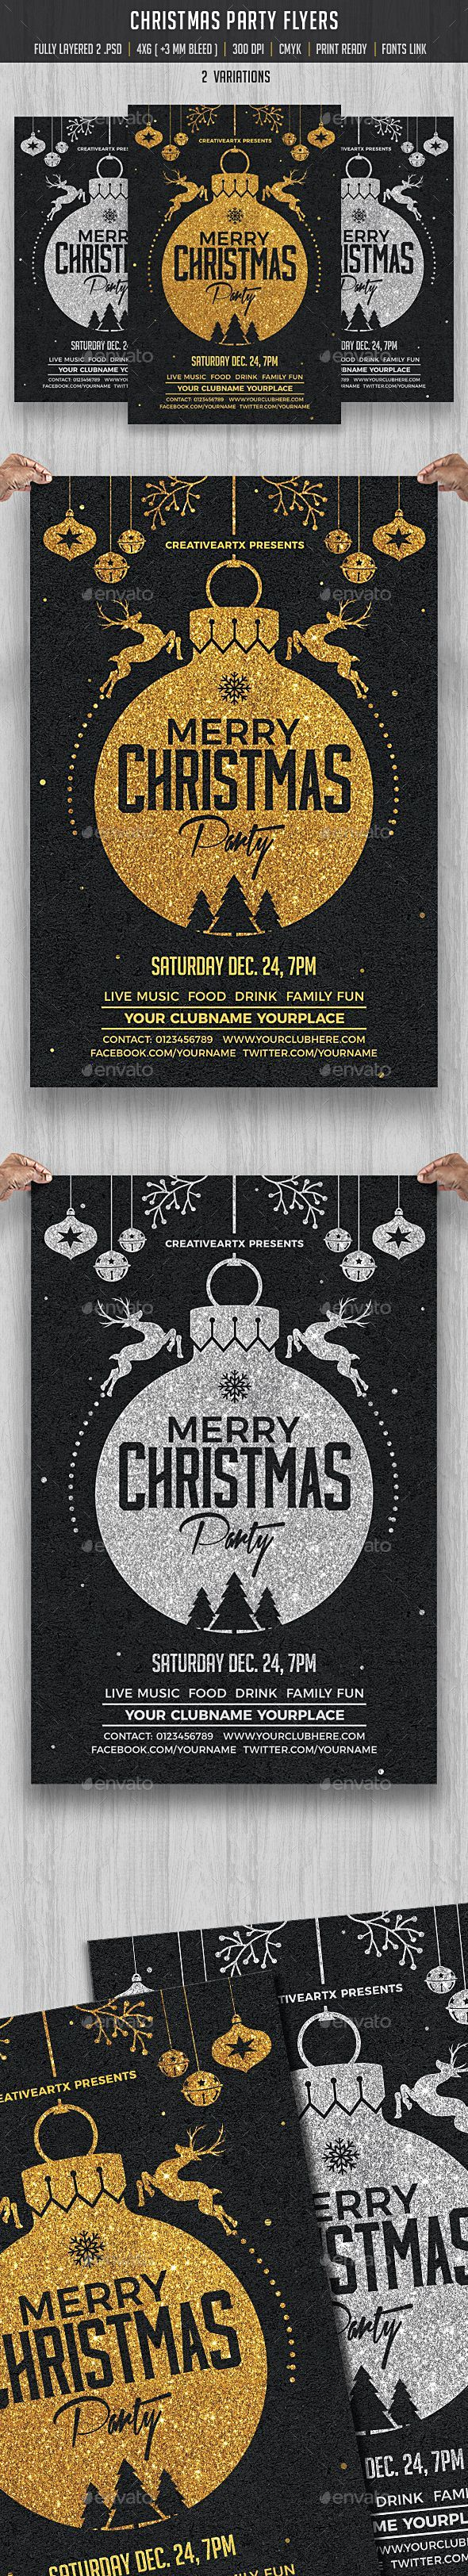 Christmas Party Flyer. Download: https://graphicriver.net/item/christmas-party-flyer/18996860?ref=thanhdesign